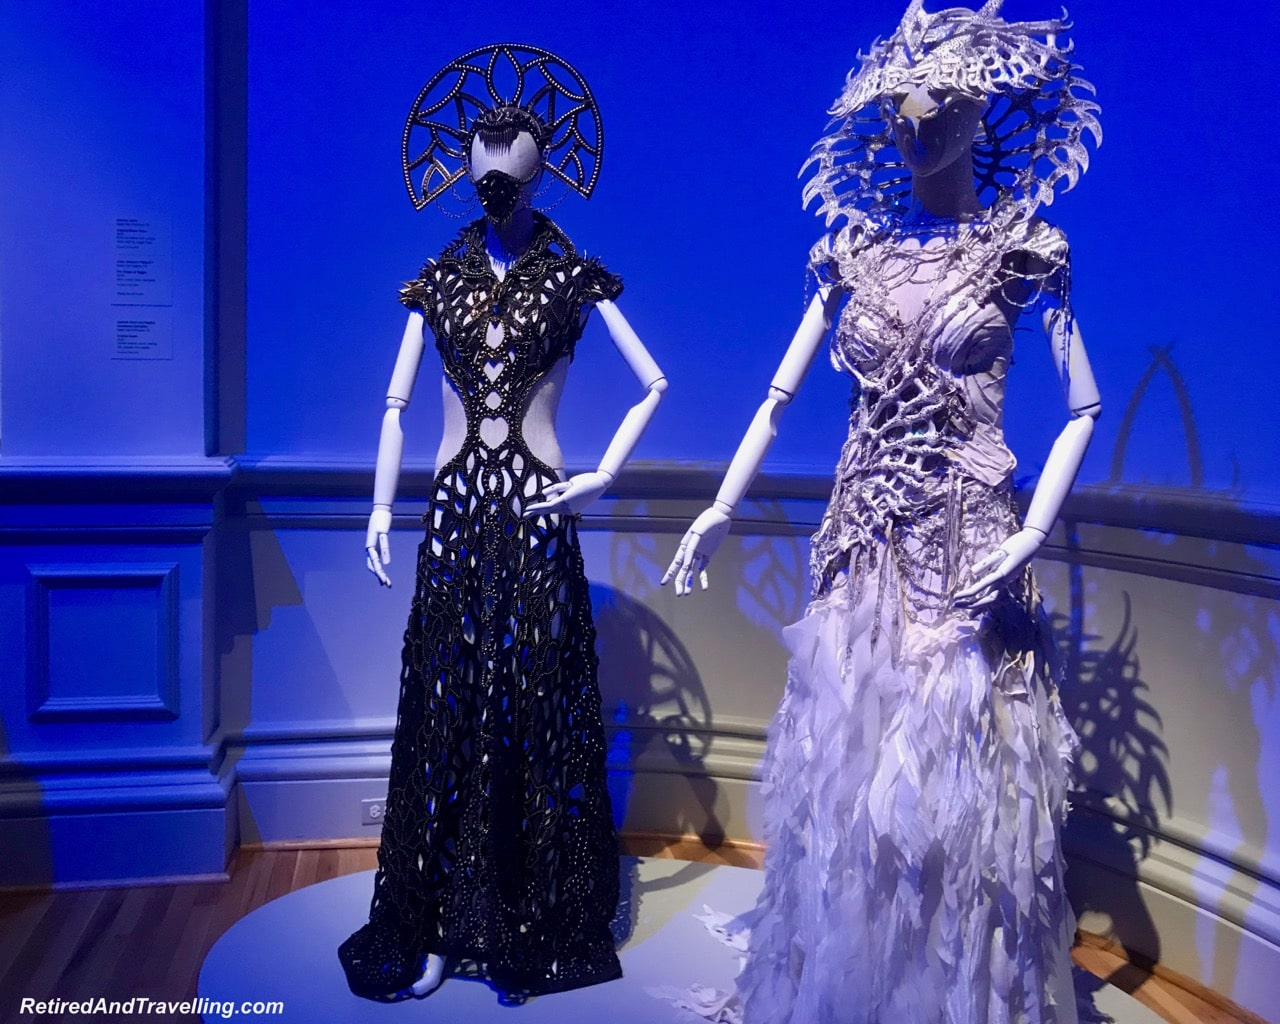 CocoonGown And Nagana Brass Costumes - Experience Burning Man In Washington Renwick Gallery.jpg